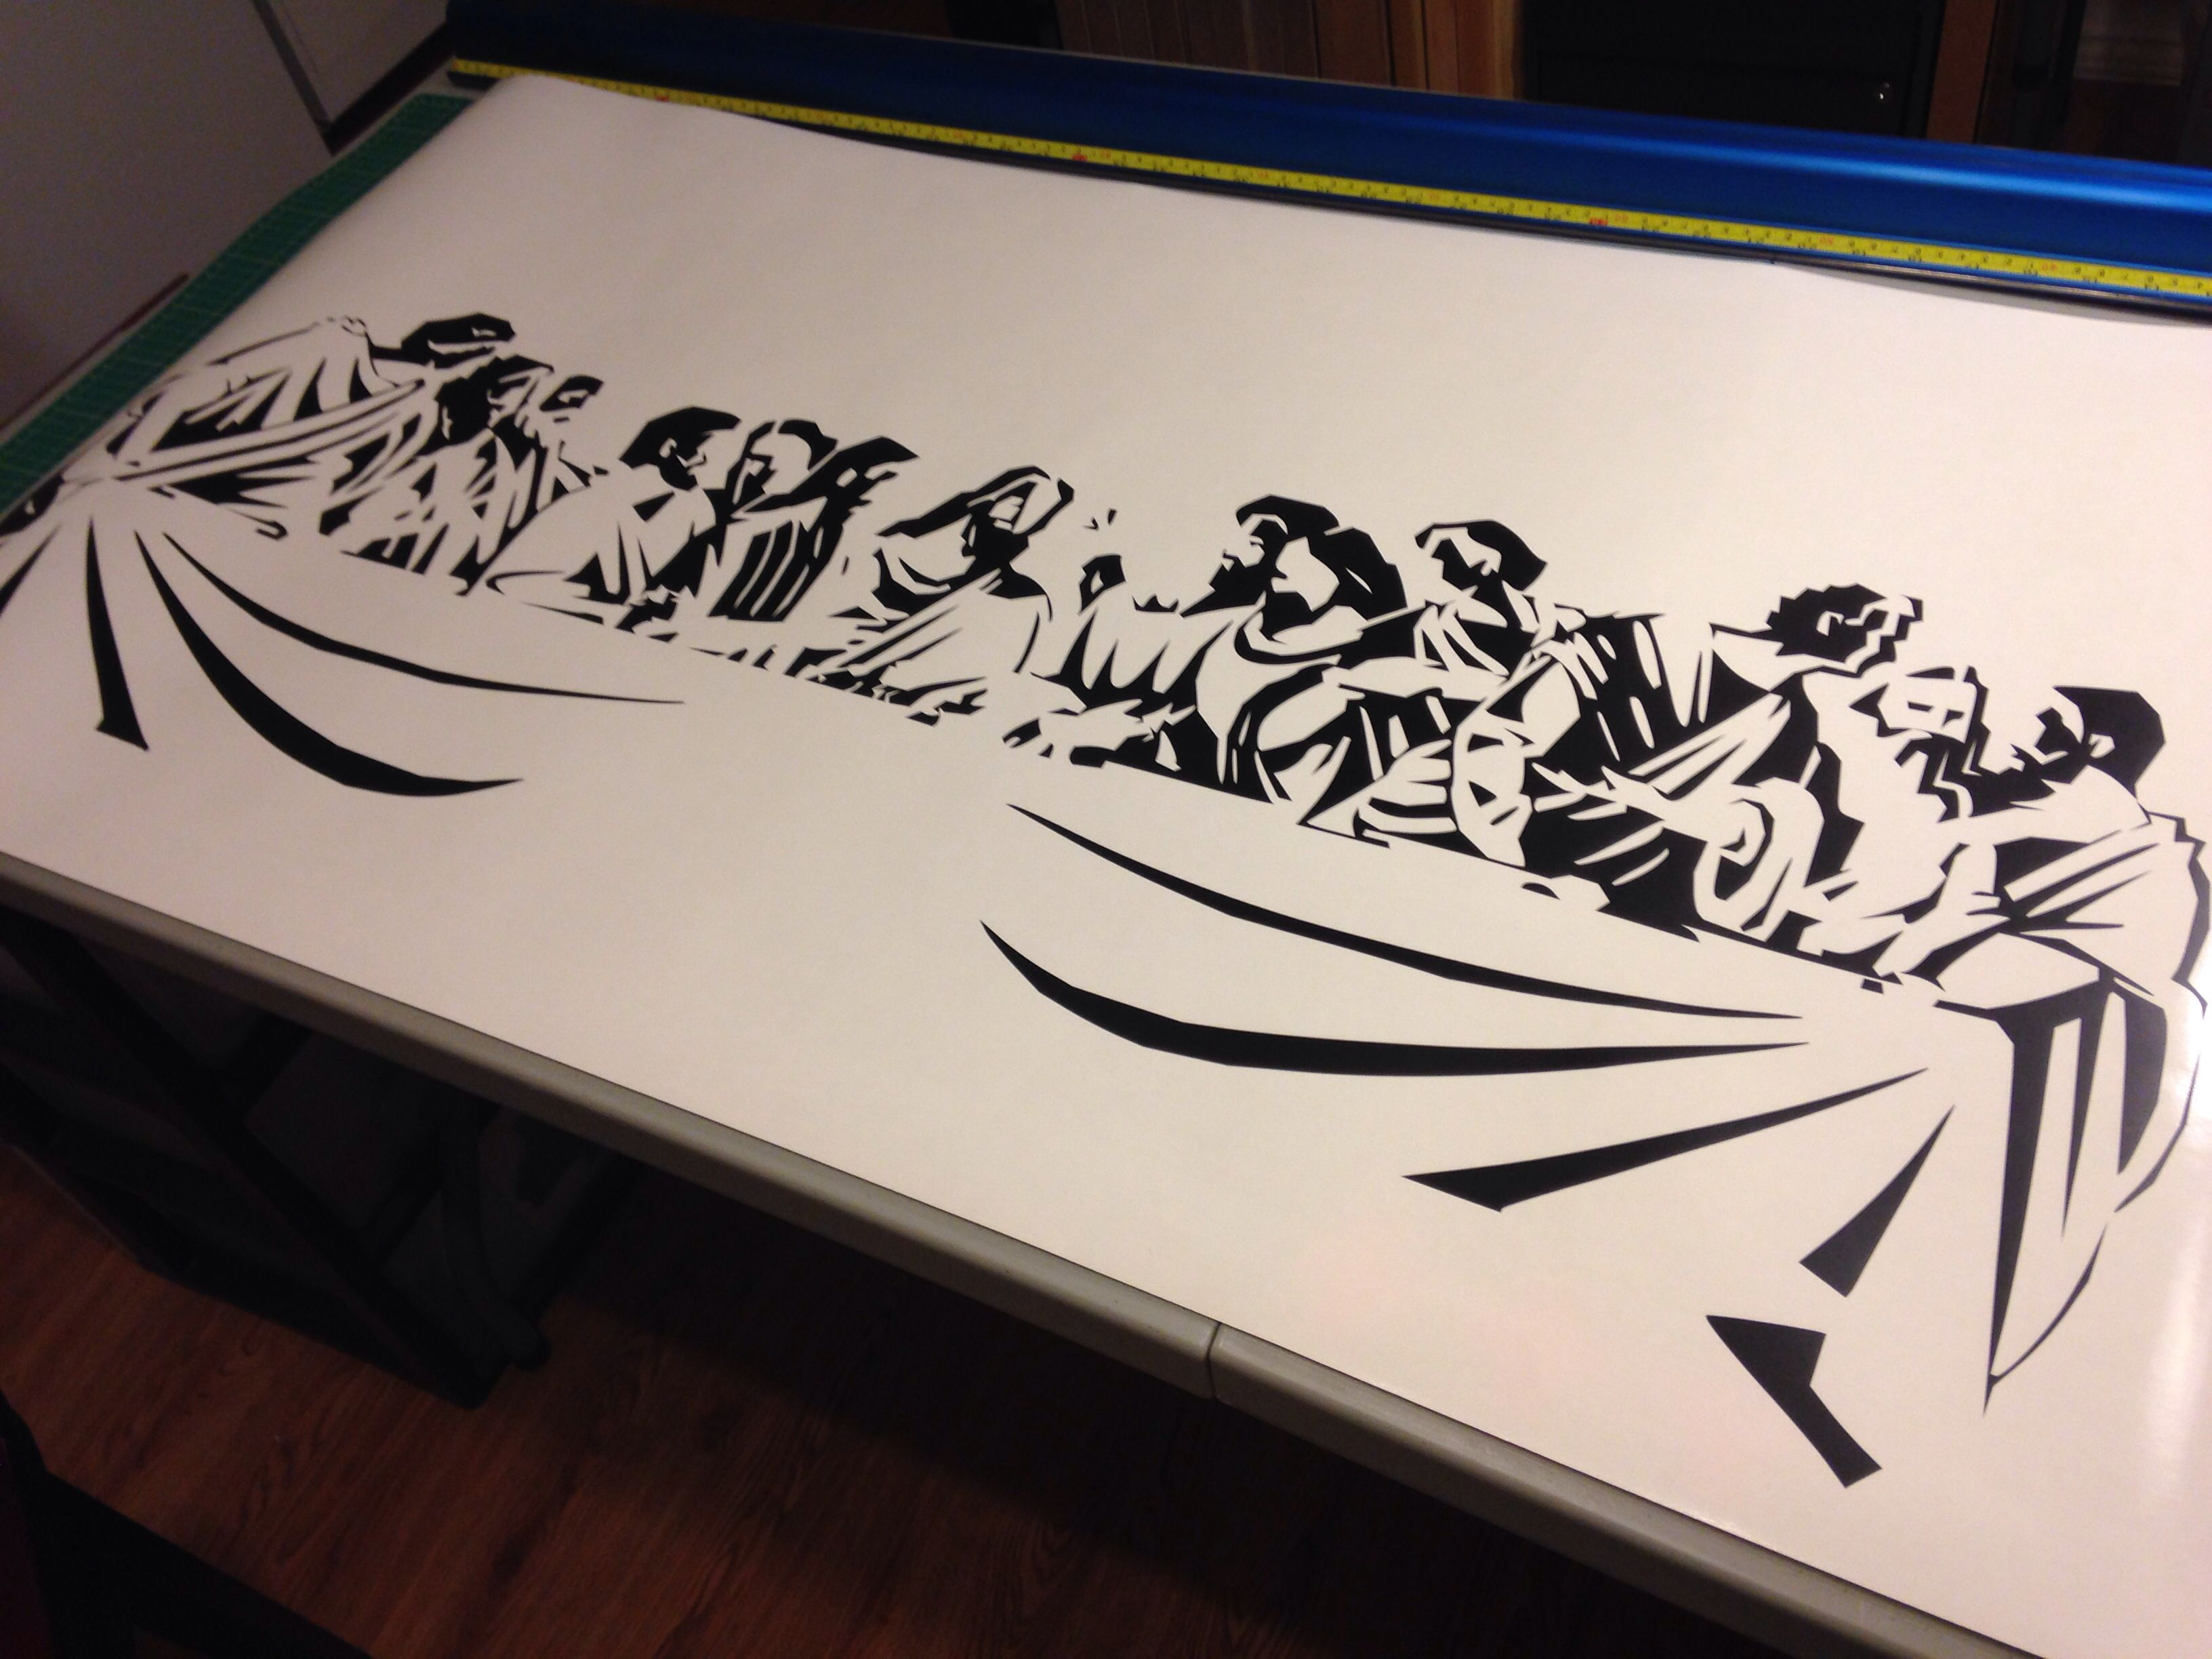 Marvelous Last Supper   Wall Decal Www.79graphix.com LIKE Us On Facebook.com Part 7